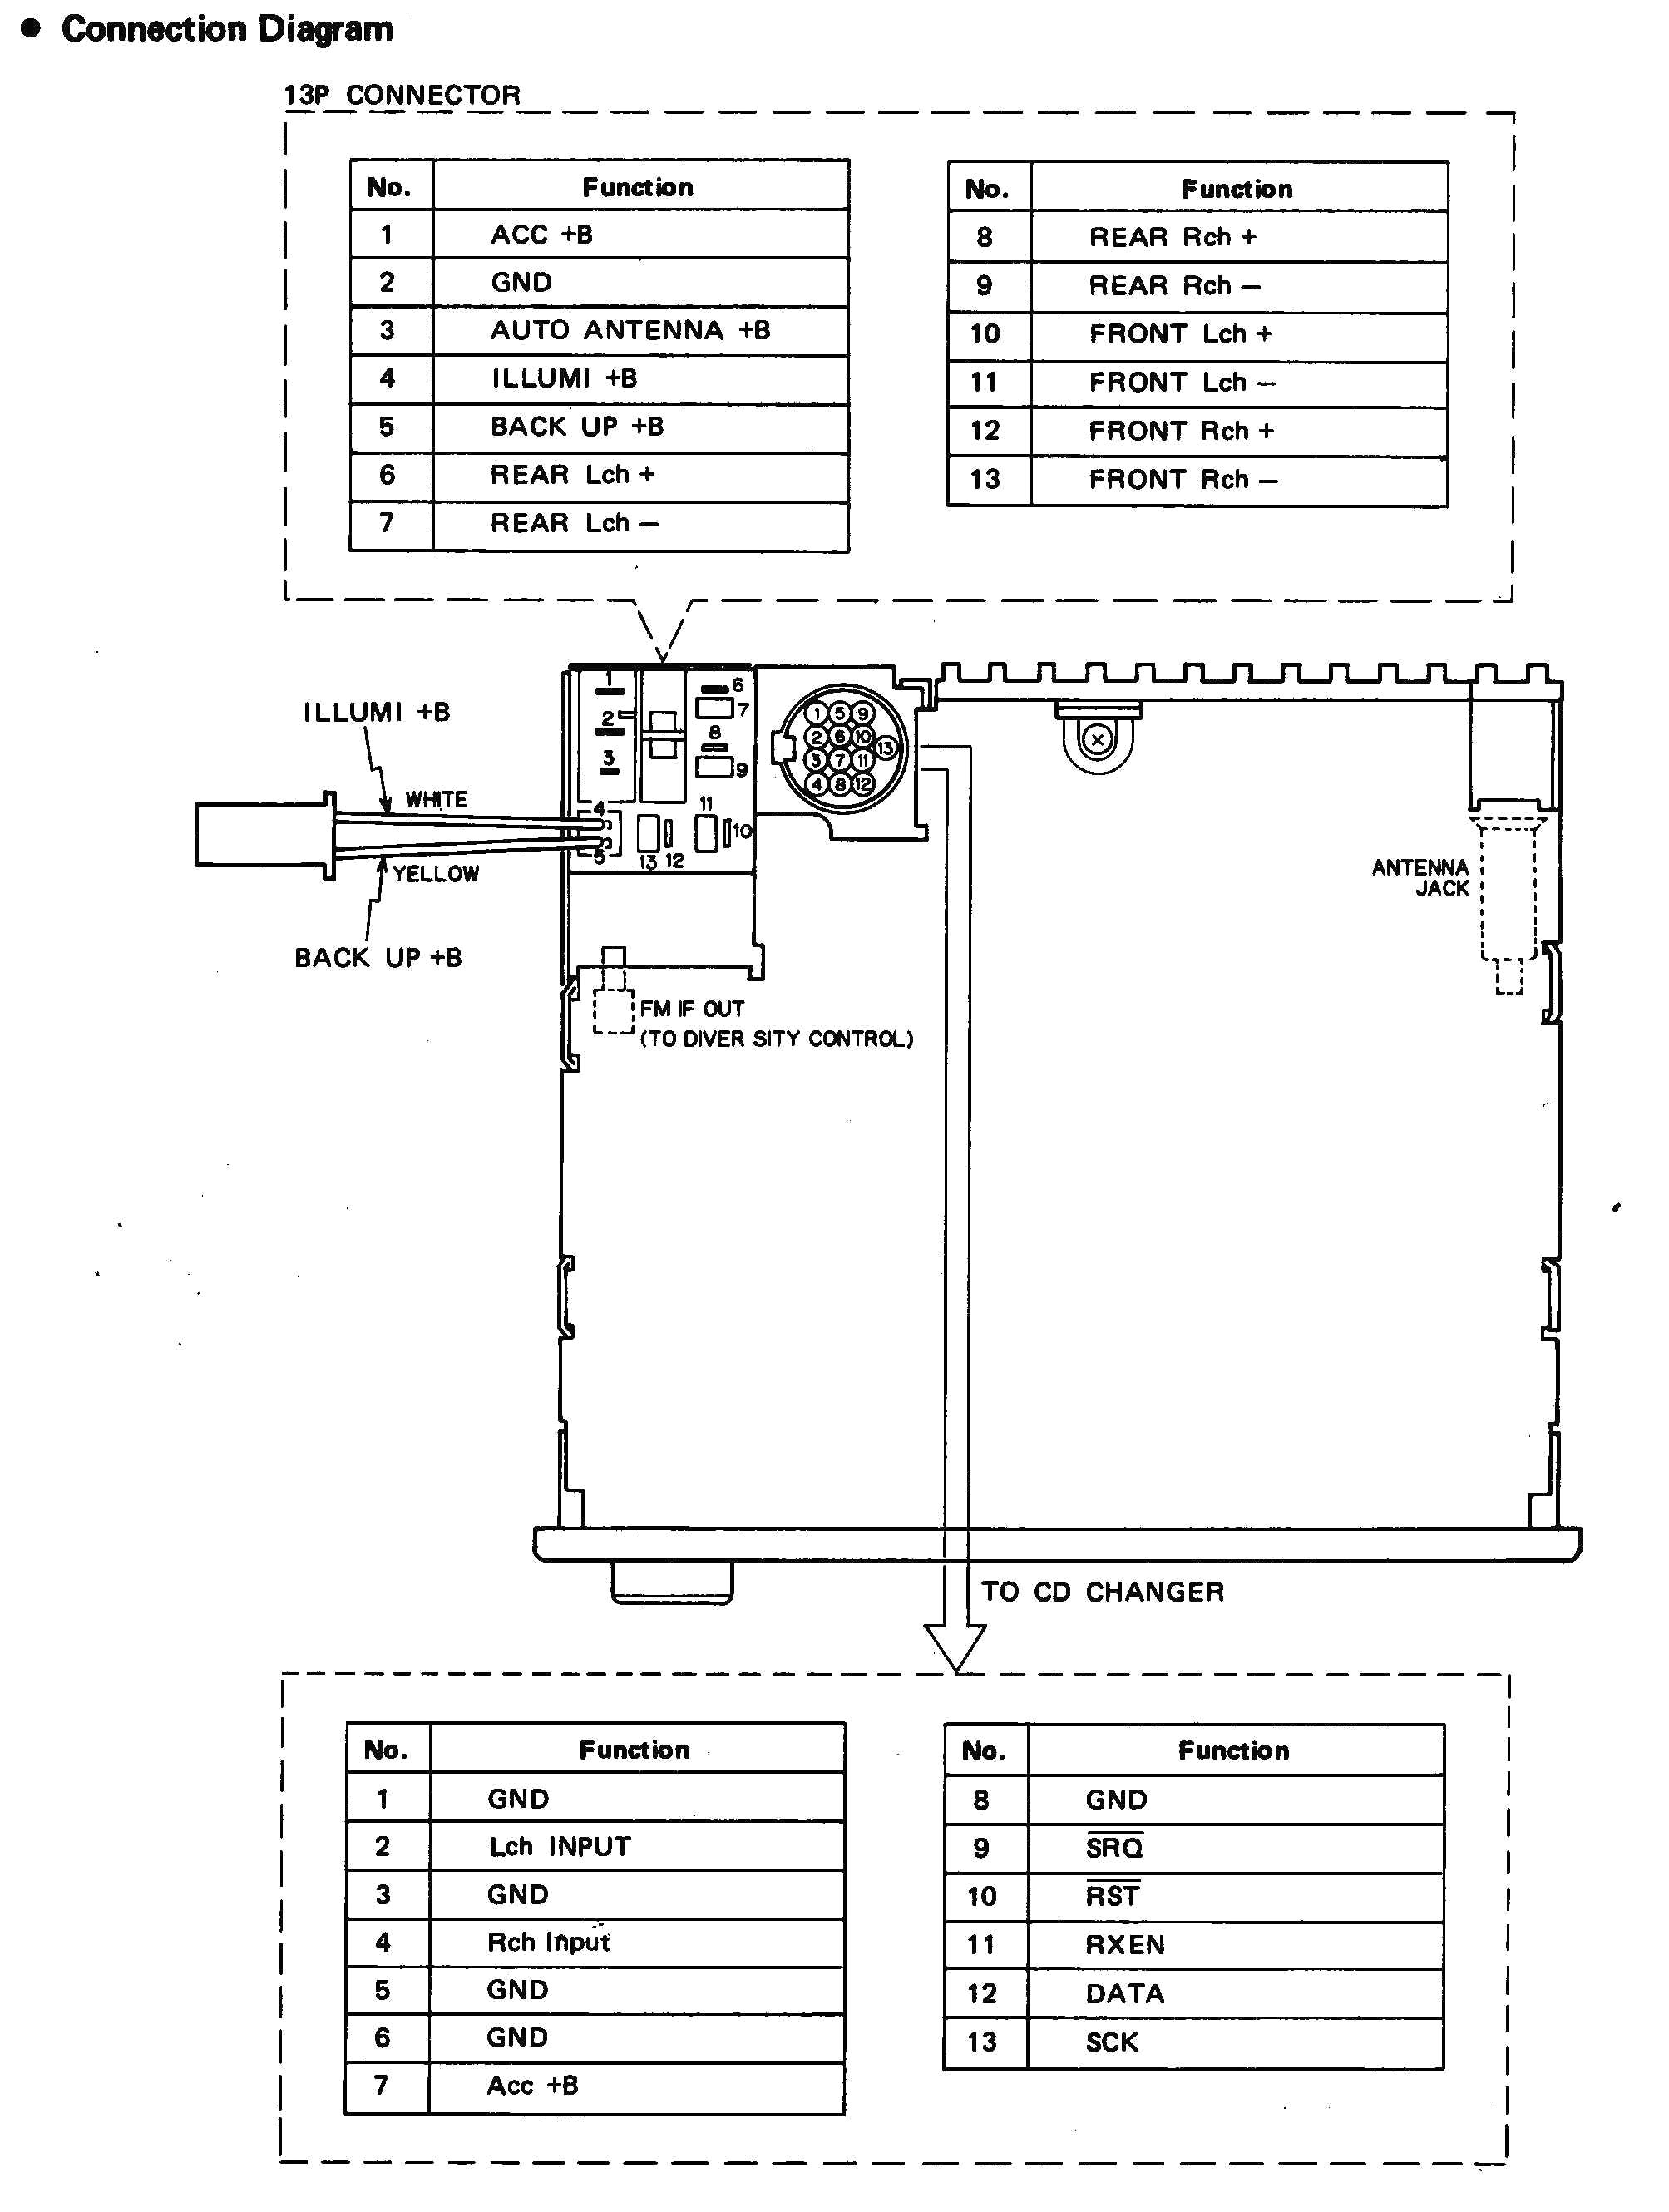 sony explode cd player wiring diagram sony cdx xplod cd player wiring diagram for a s2010 sony xplod 52wx4 wiring diagram. wiring. wiring diagram images